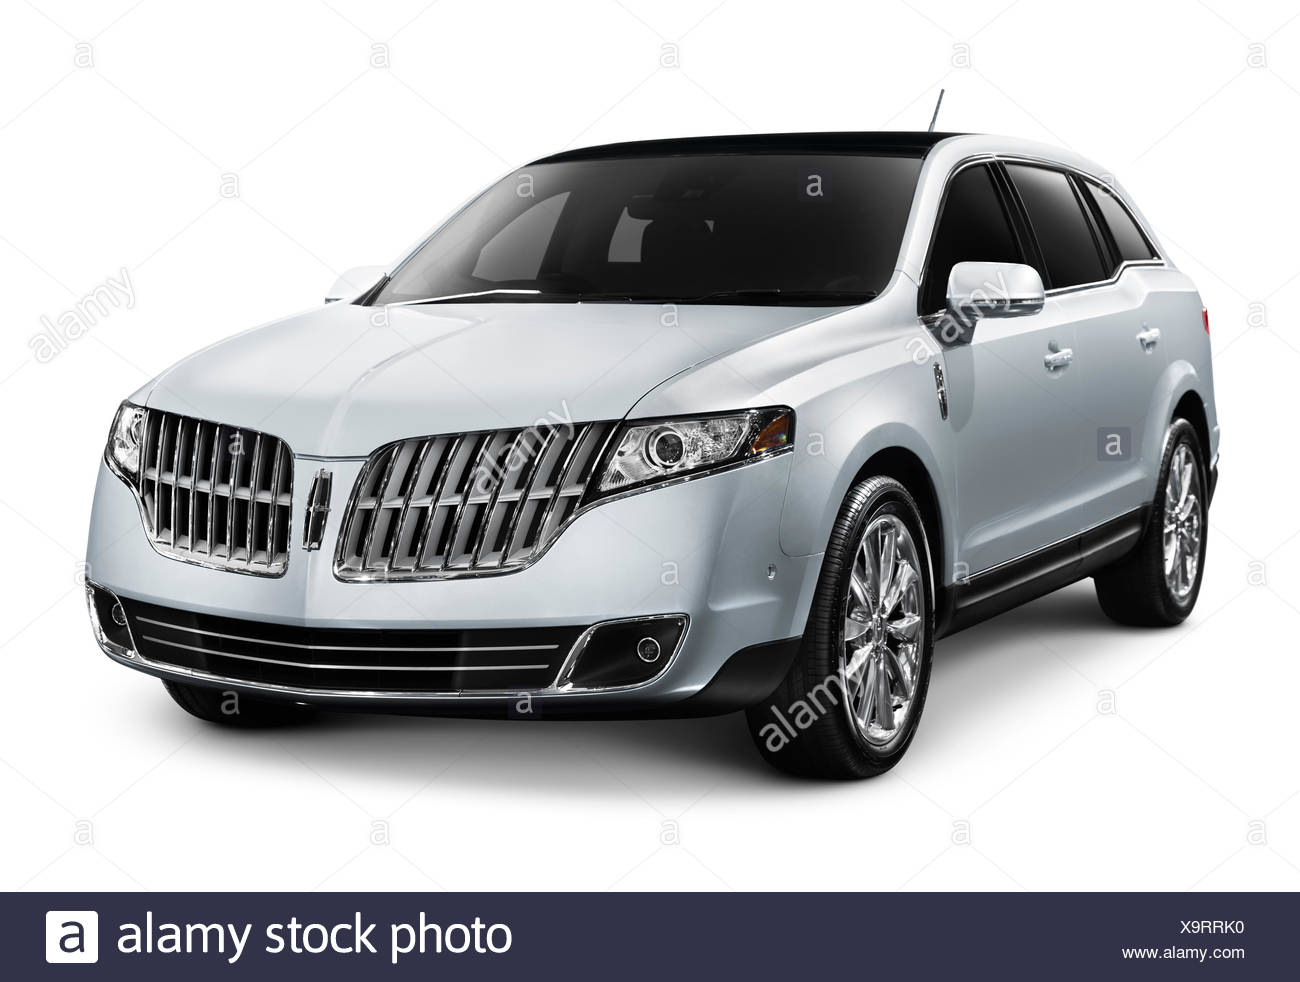 2010 Lincoln MKT luxury crossover car - Stock Image